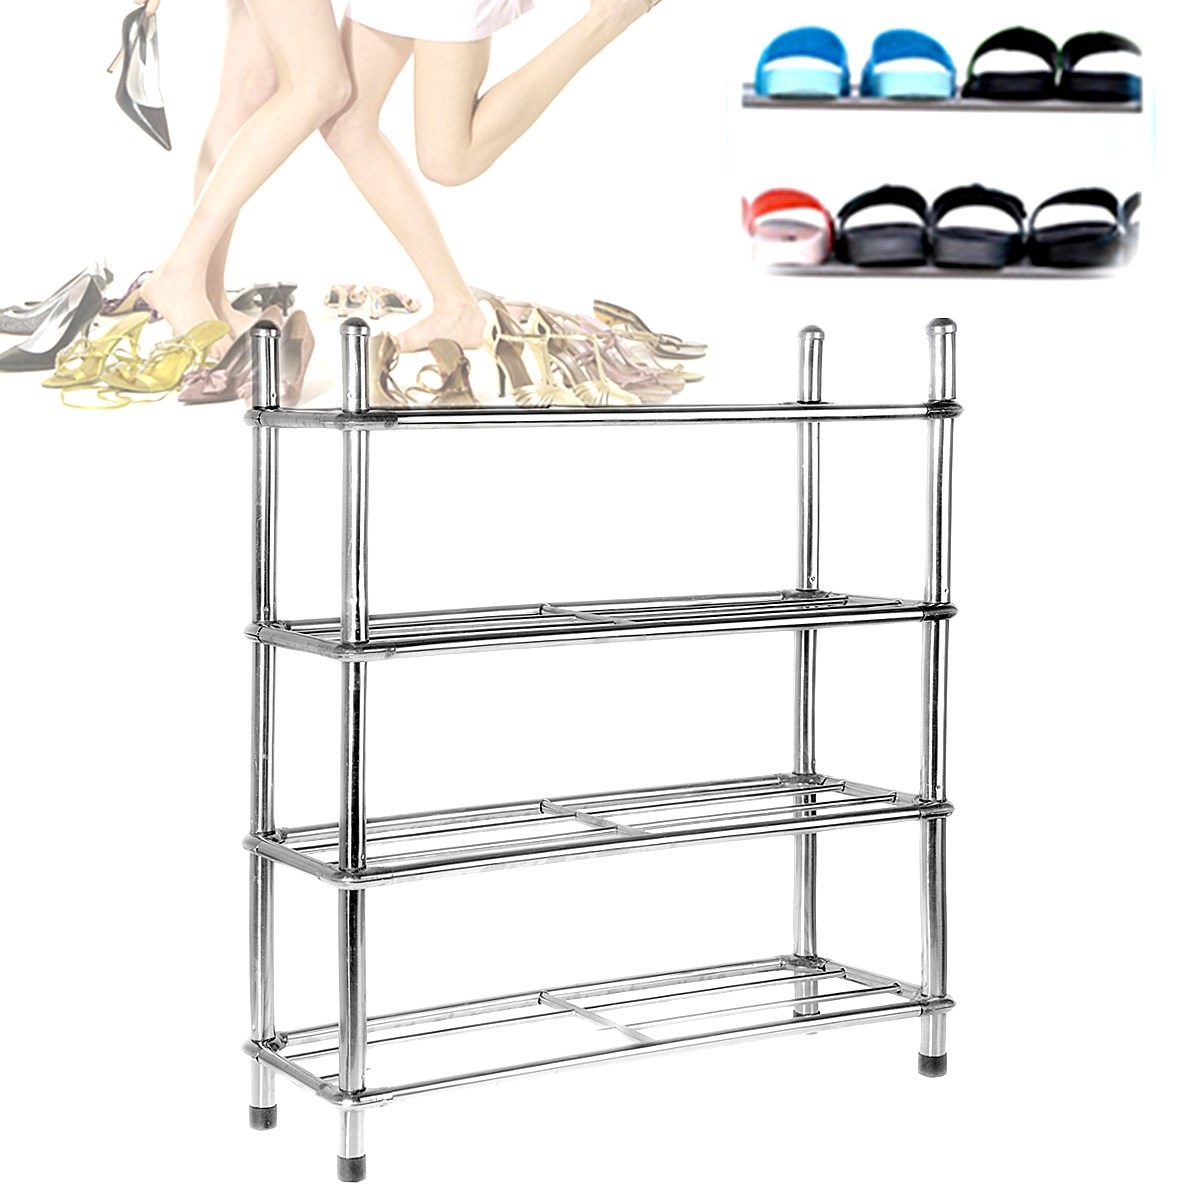 4 Tire Shoe Rack Shelf Home Storage Organizer Closet Portable Multilayer  Combination Dustproof for Cabinet Storage